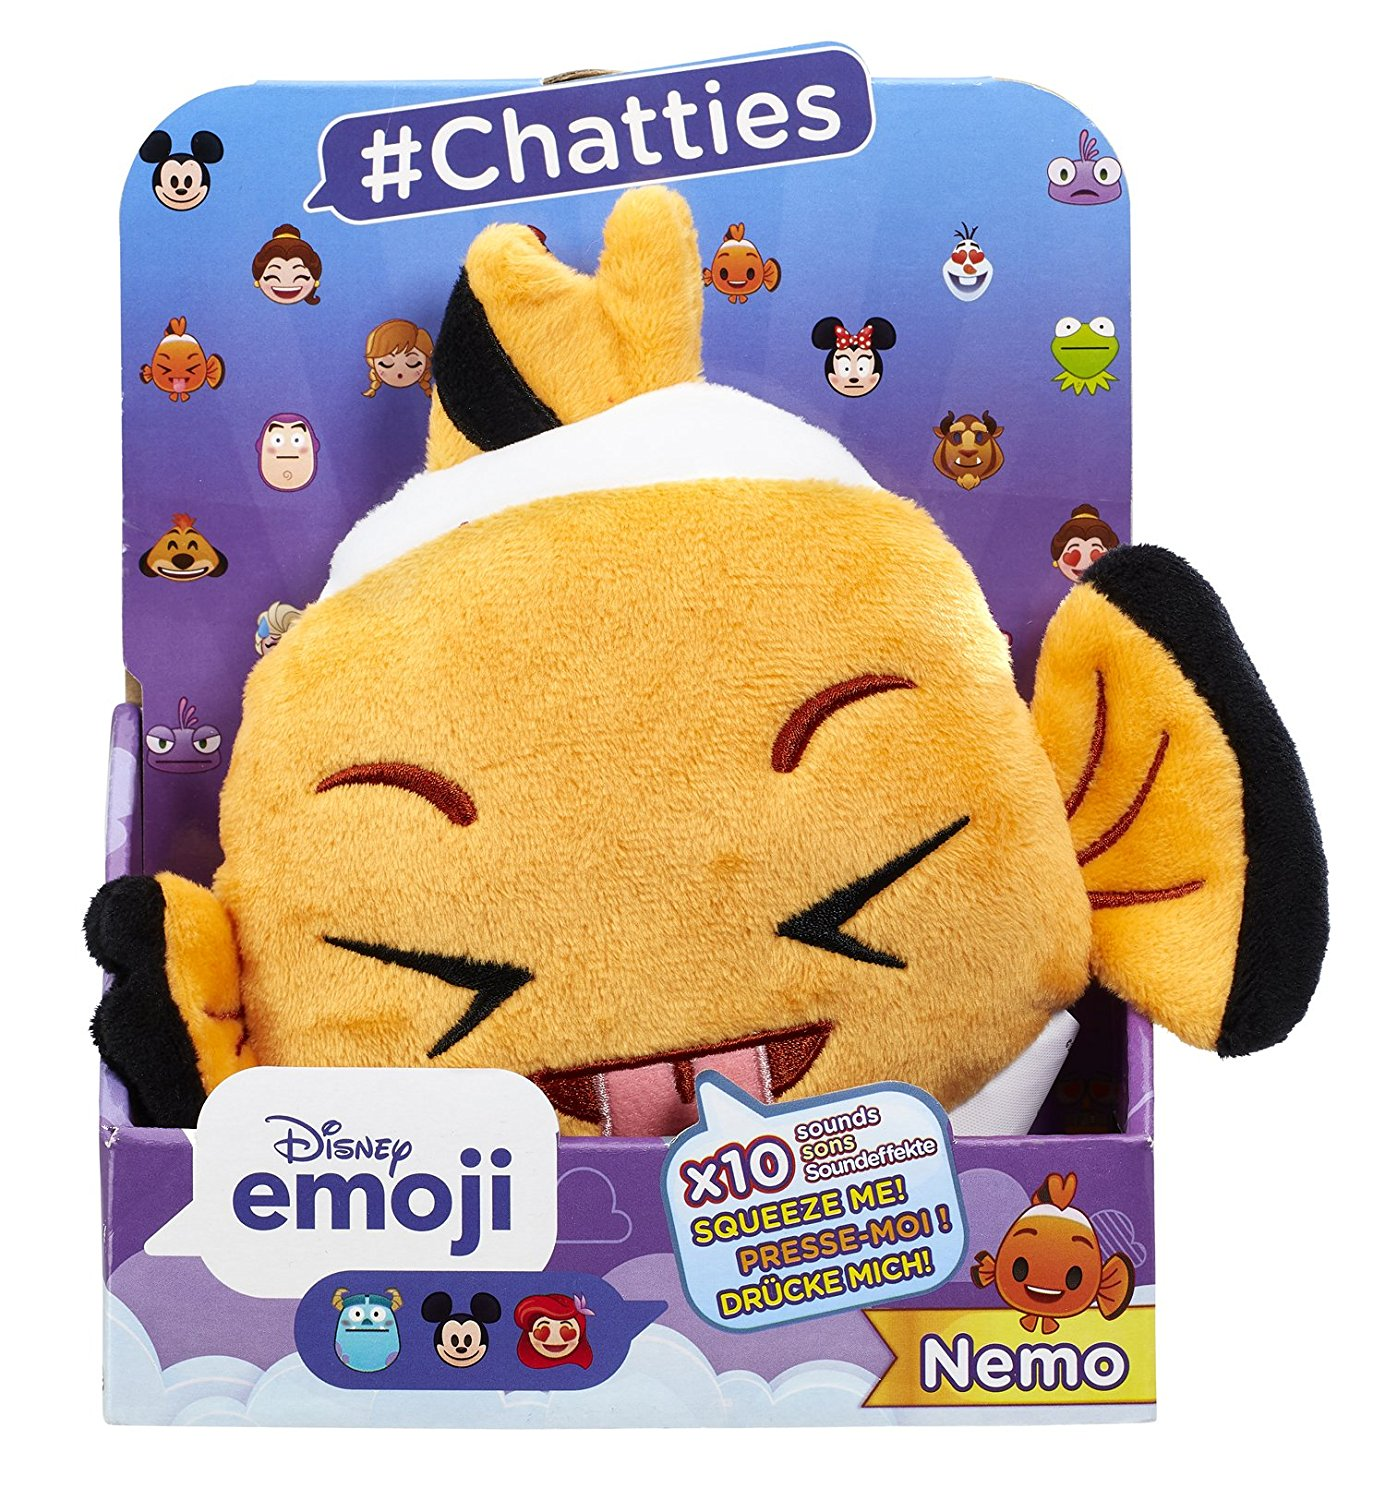 Disney Emoji #Chatties Finding Nemo Nemo Plush With Sound Effect - Click Image to Close